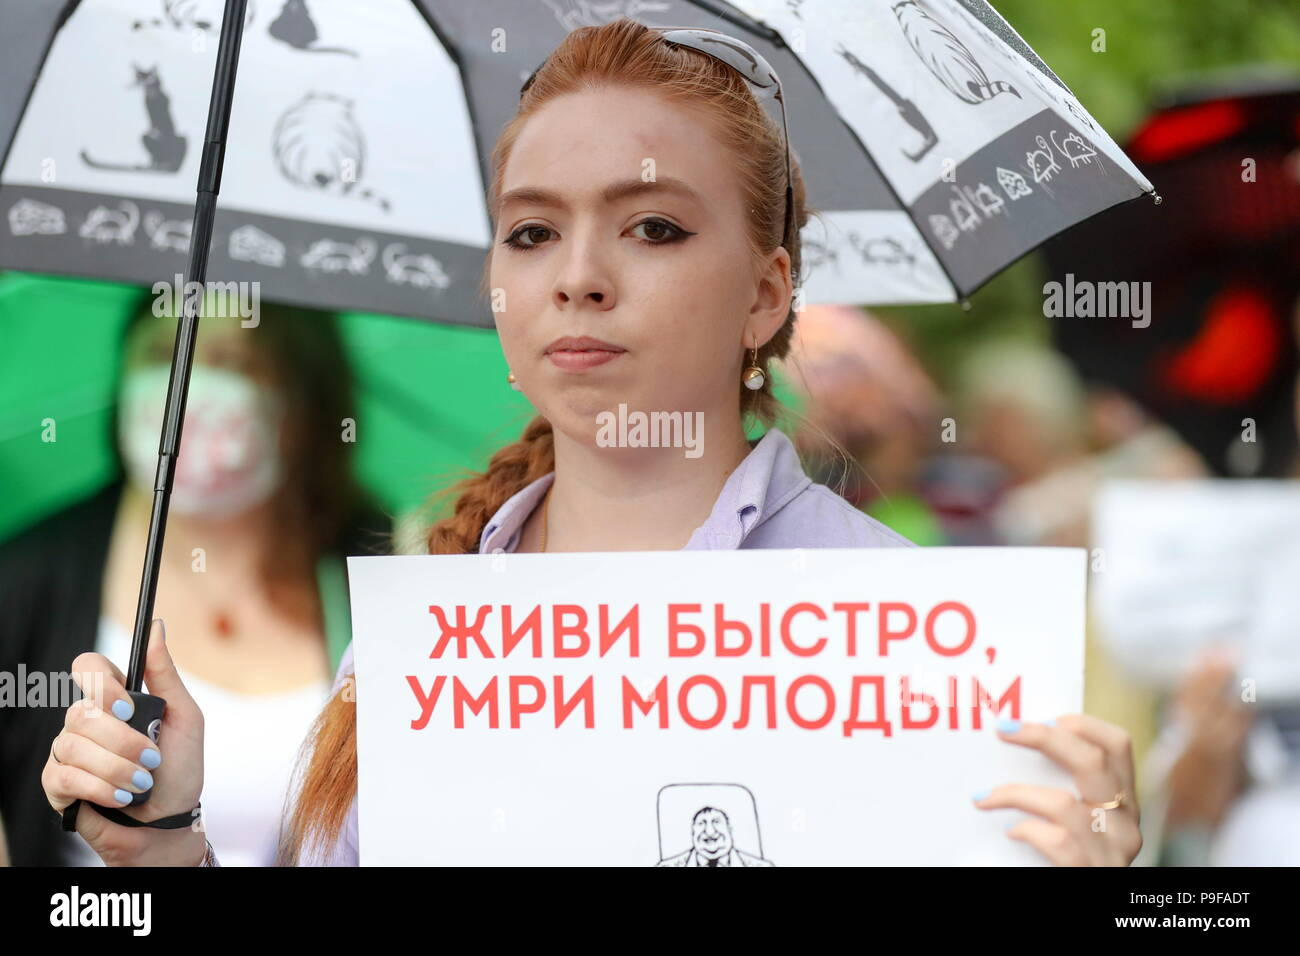 Moscow, Russia. 18th July, 2018. MOSCOW, RUSSIA - JULY 18, 2018: A young woman takes part in Moscow's Sokolniki Hyde Park rally against a Russian government proposal to raise the retirement age from 60 to 65 for men, and from 55 to 63 for women within the next two decades. Sergei Savostyanov/TASS Credit: ITAR-TASS News Agency/Alamy Live News - Stock Image